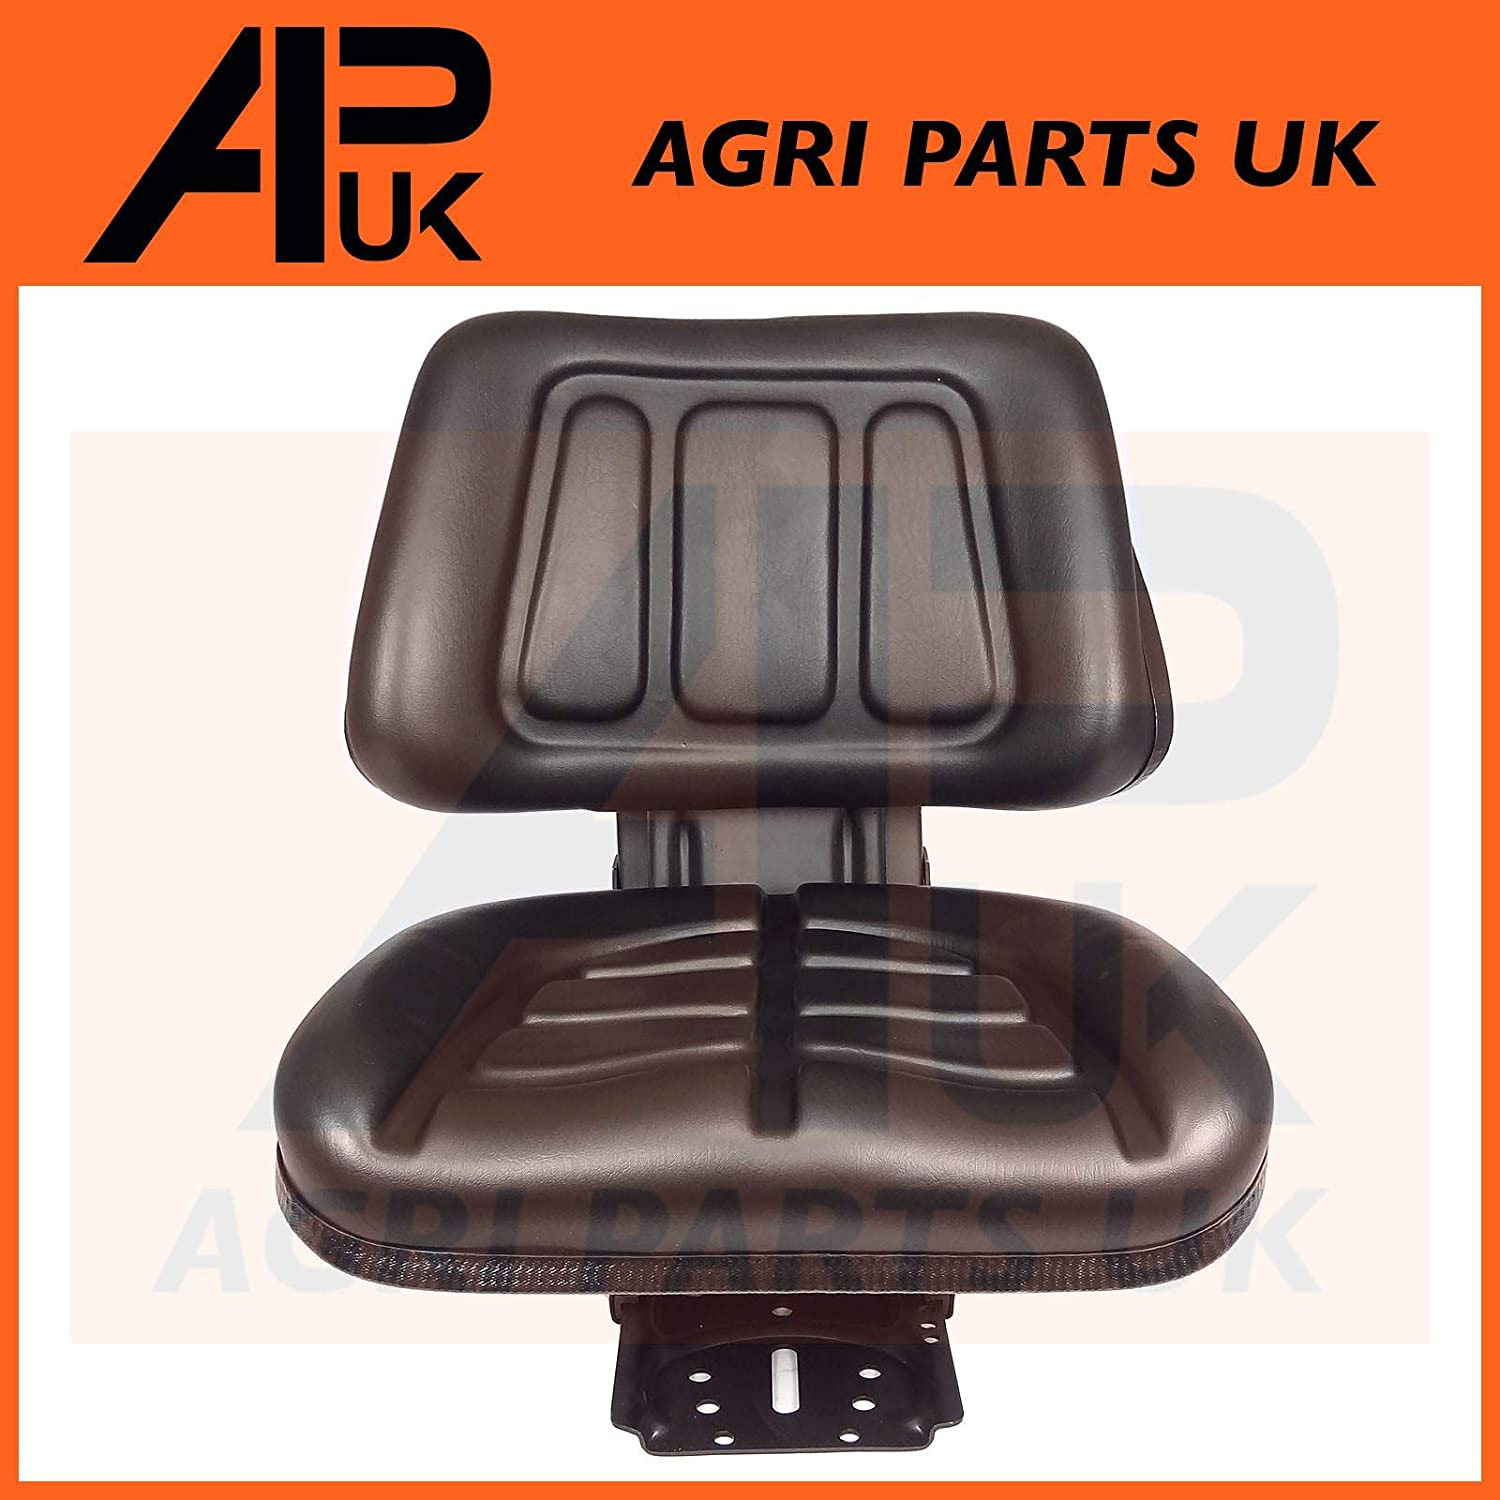 Black Suspension Seat with Height /& Weight Adjustment Compatible with Kubota Iseki Yanmar Tractor